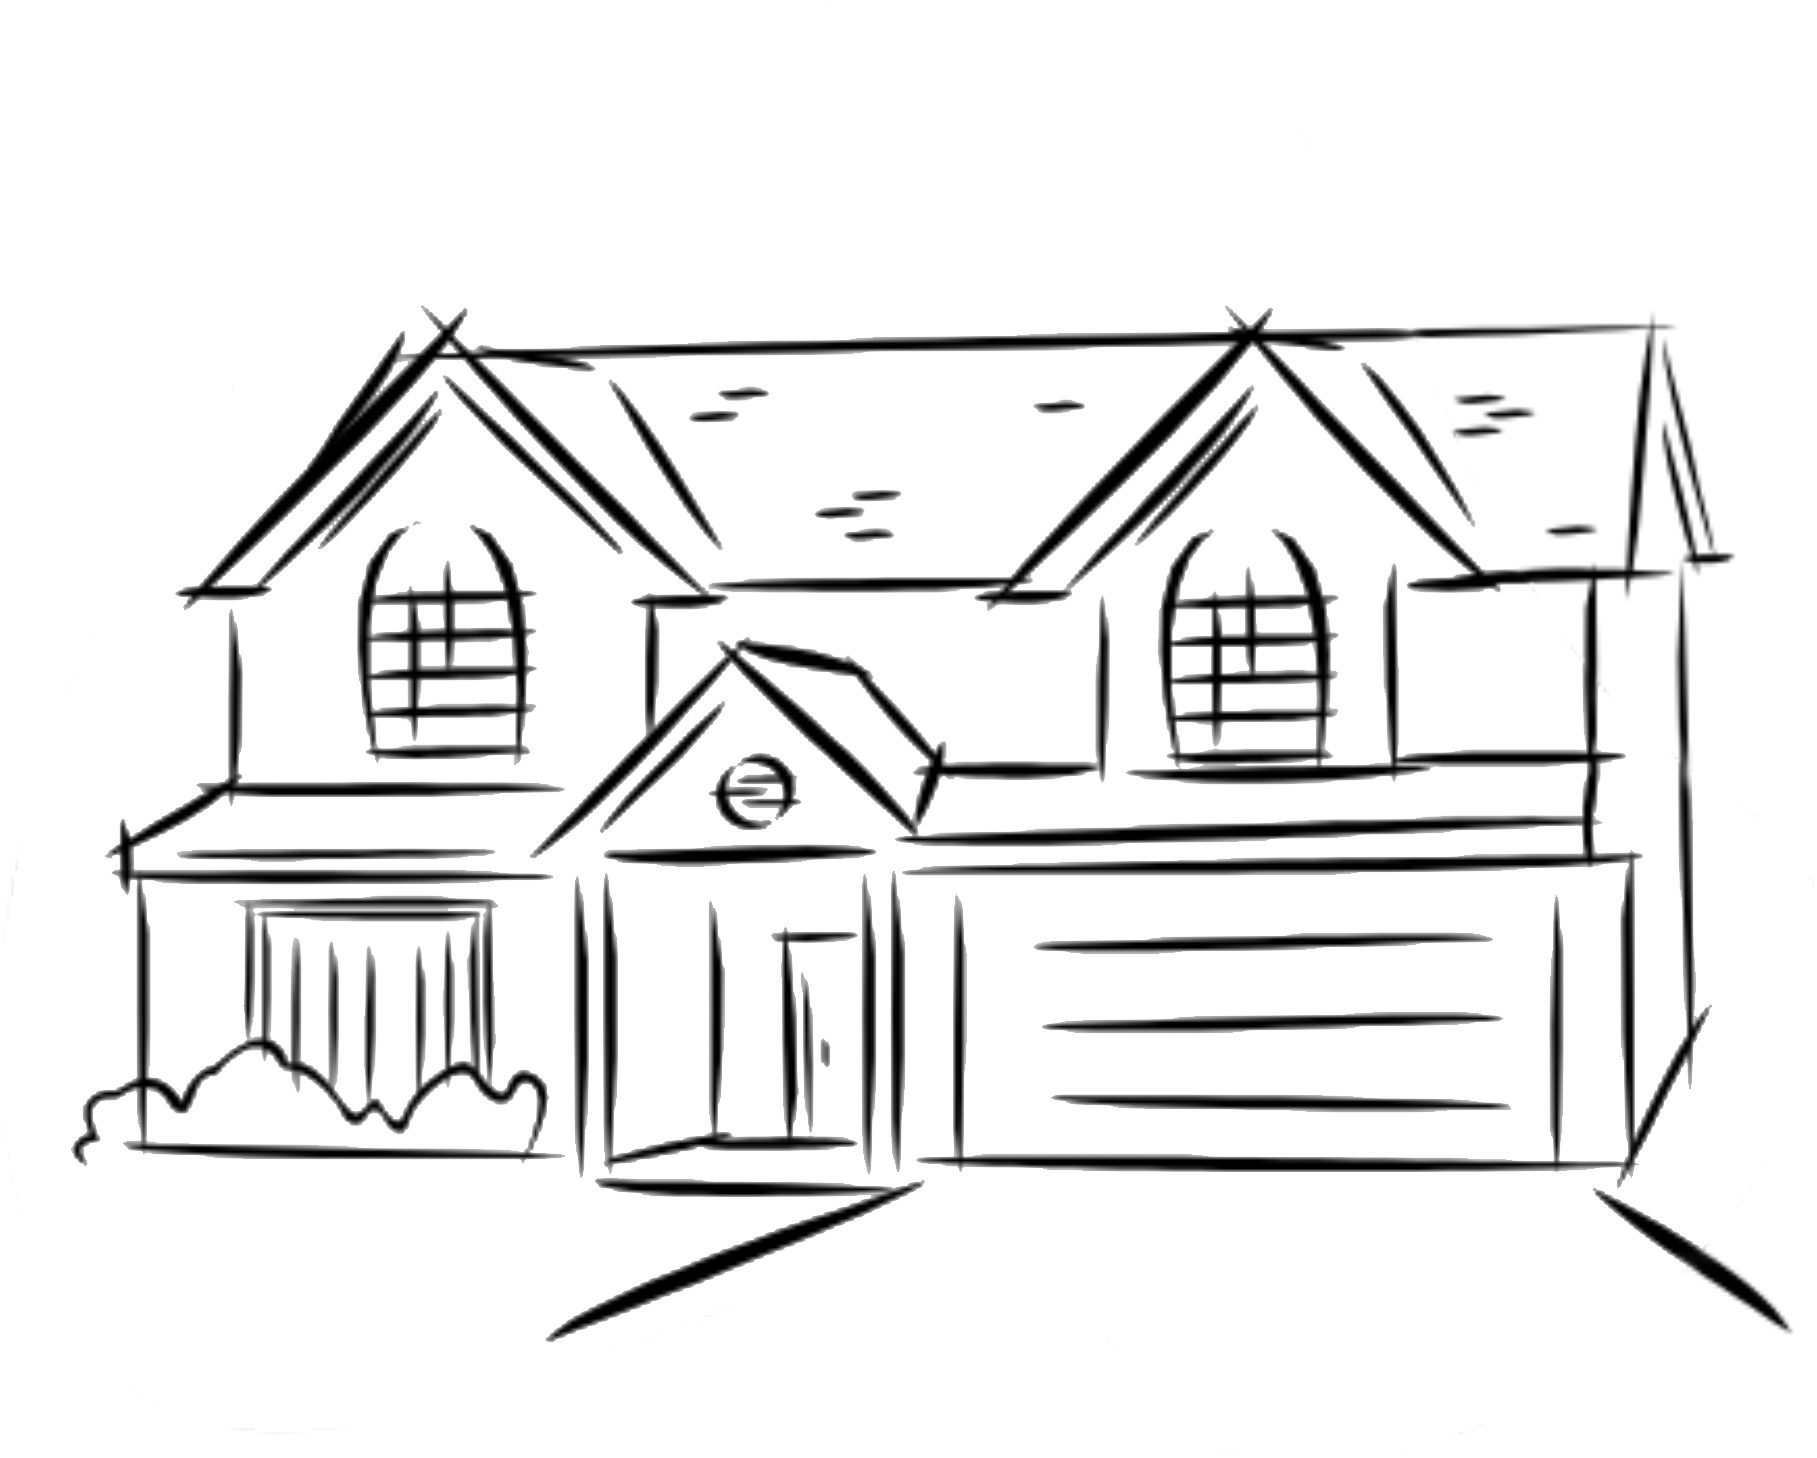 House drawing clipart svg transparent Two Story House Drawing at GetDrawings.com | Free for personal use ... svg transparent